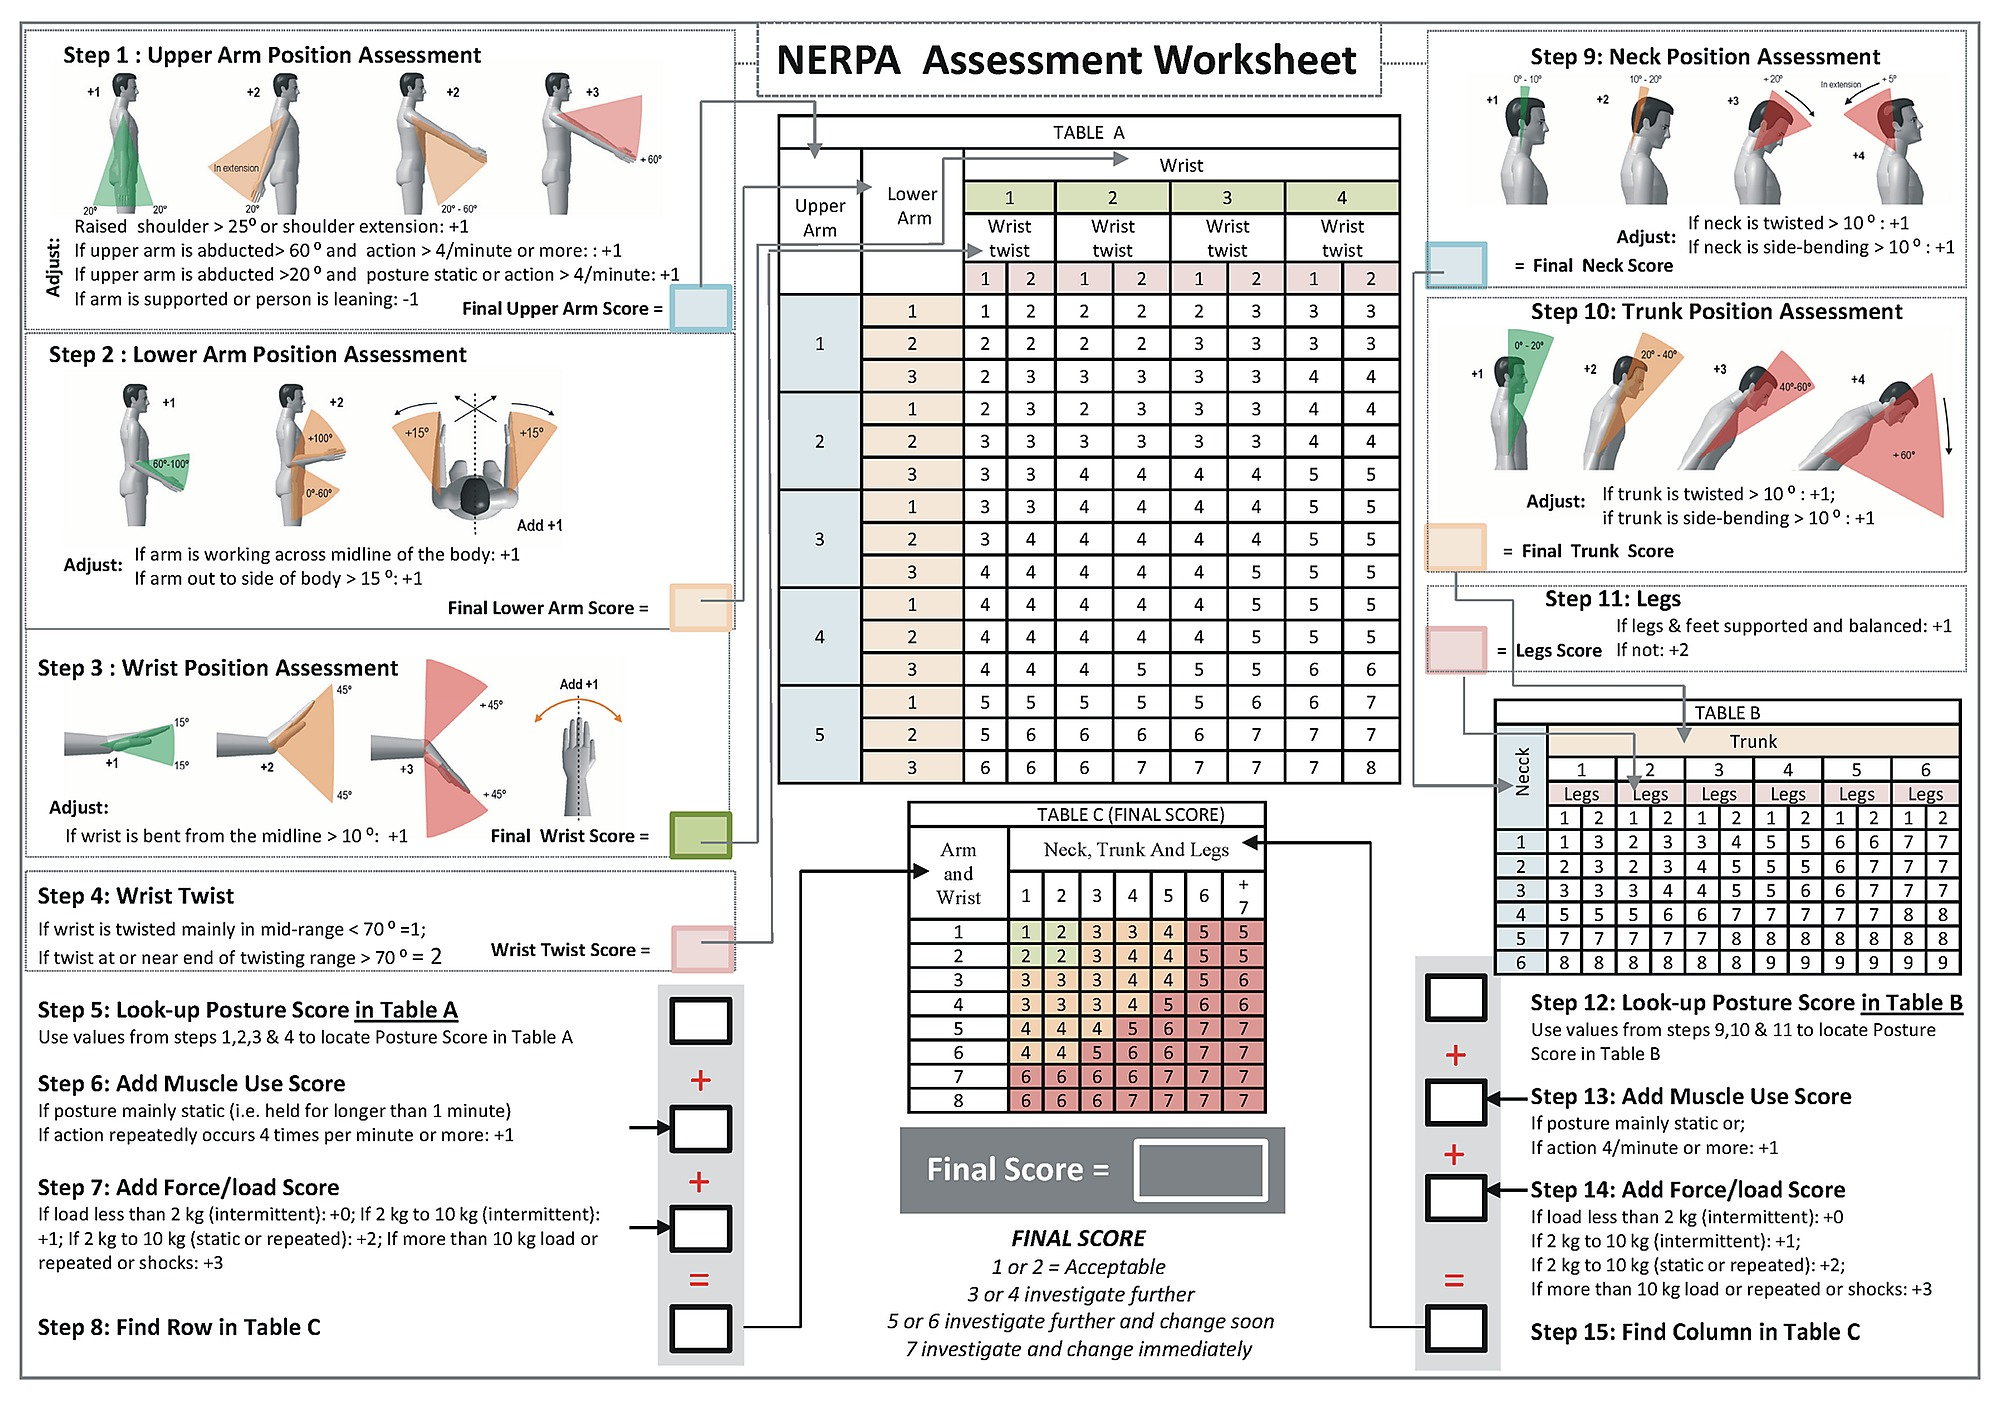 NERPA worksheet modified from RULA worksheet using new NERPA criteria.